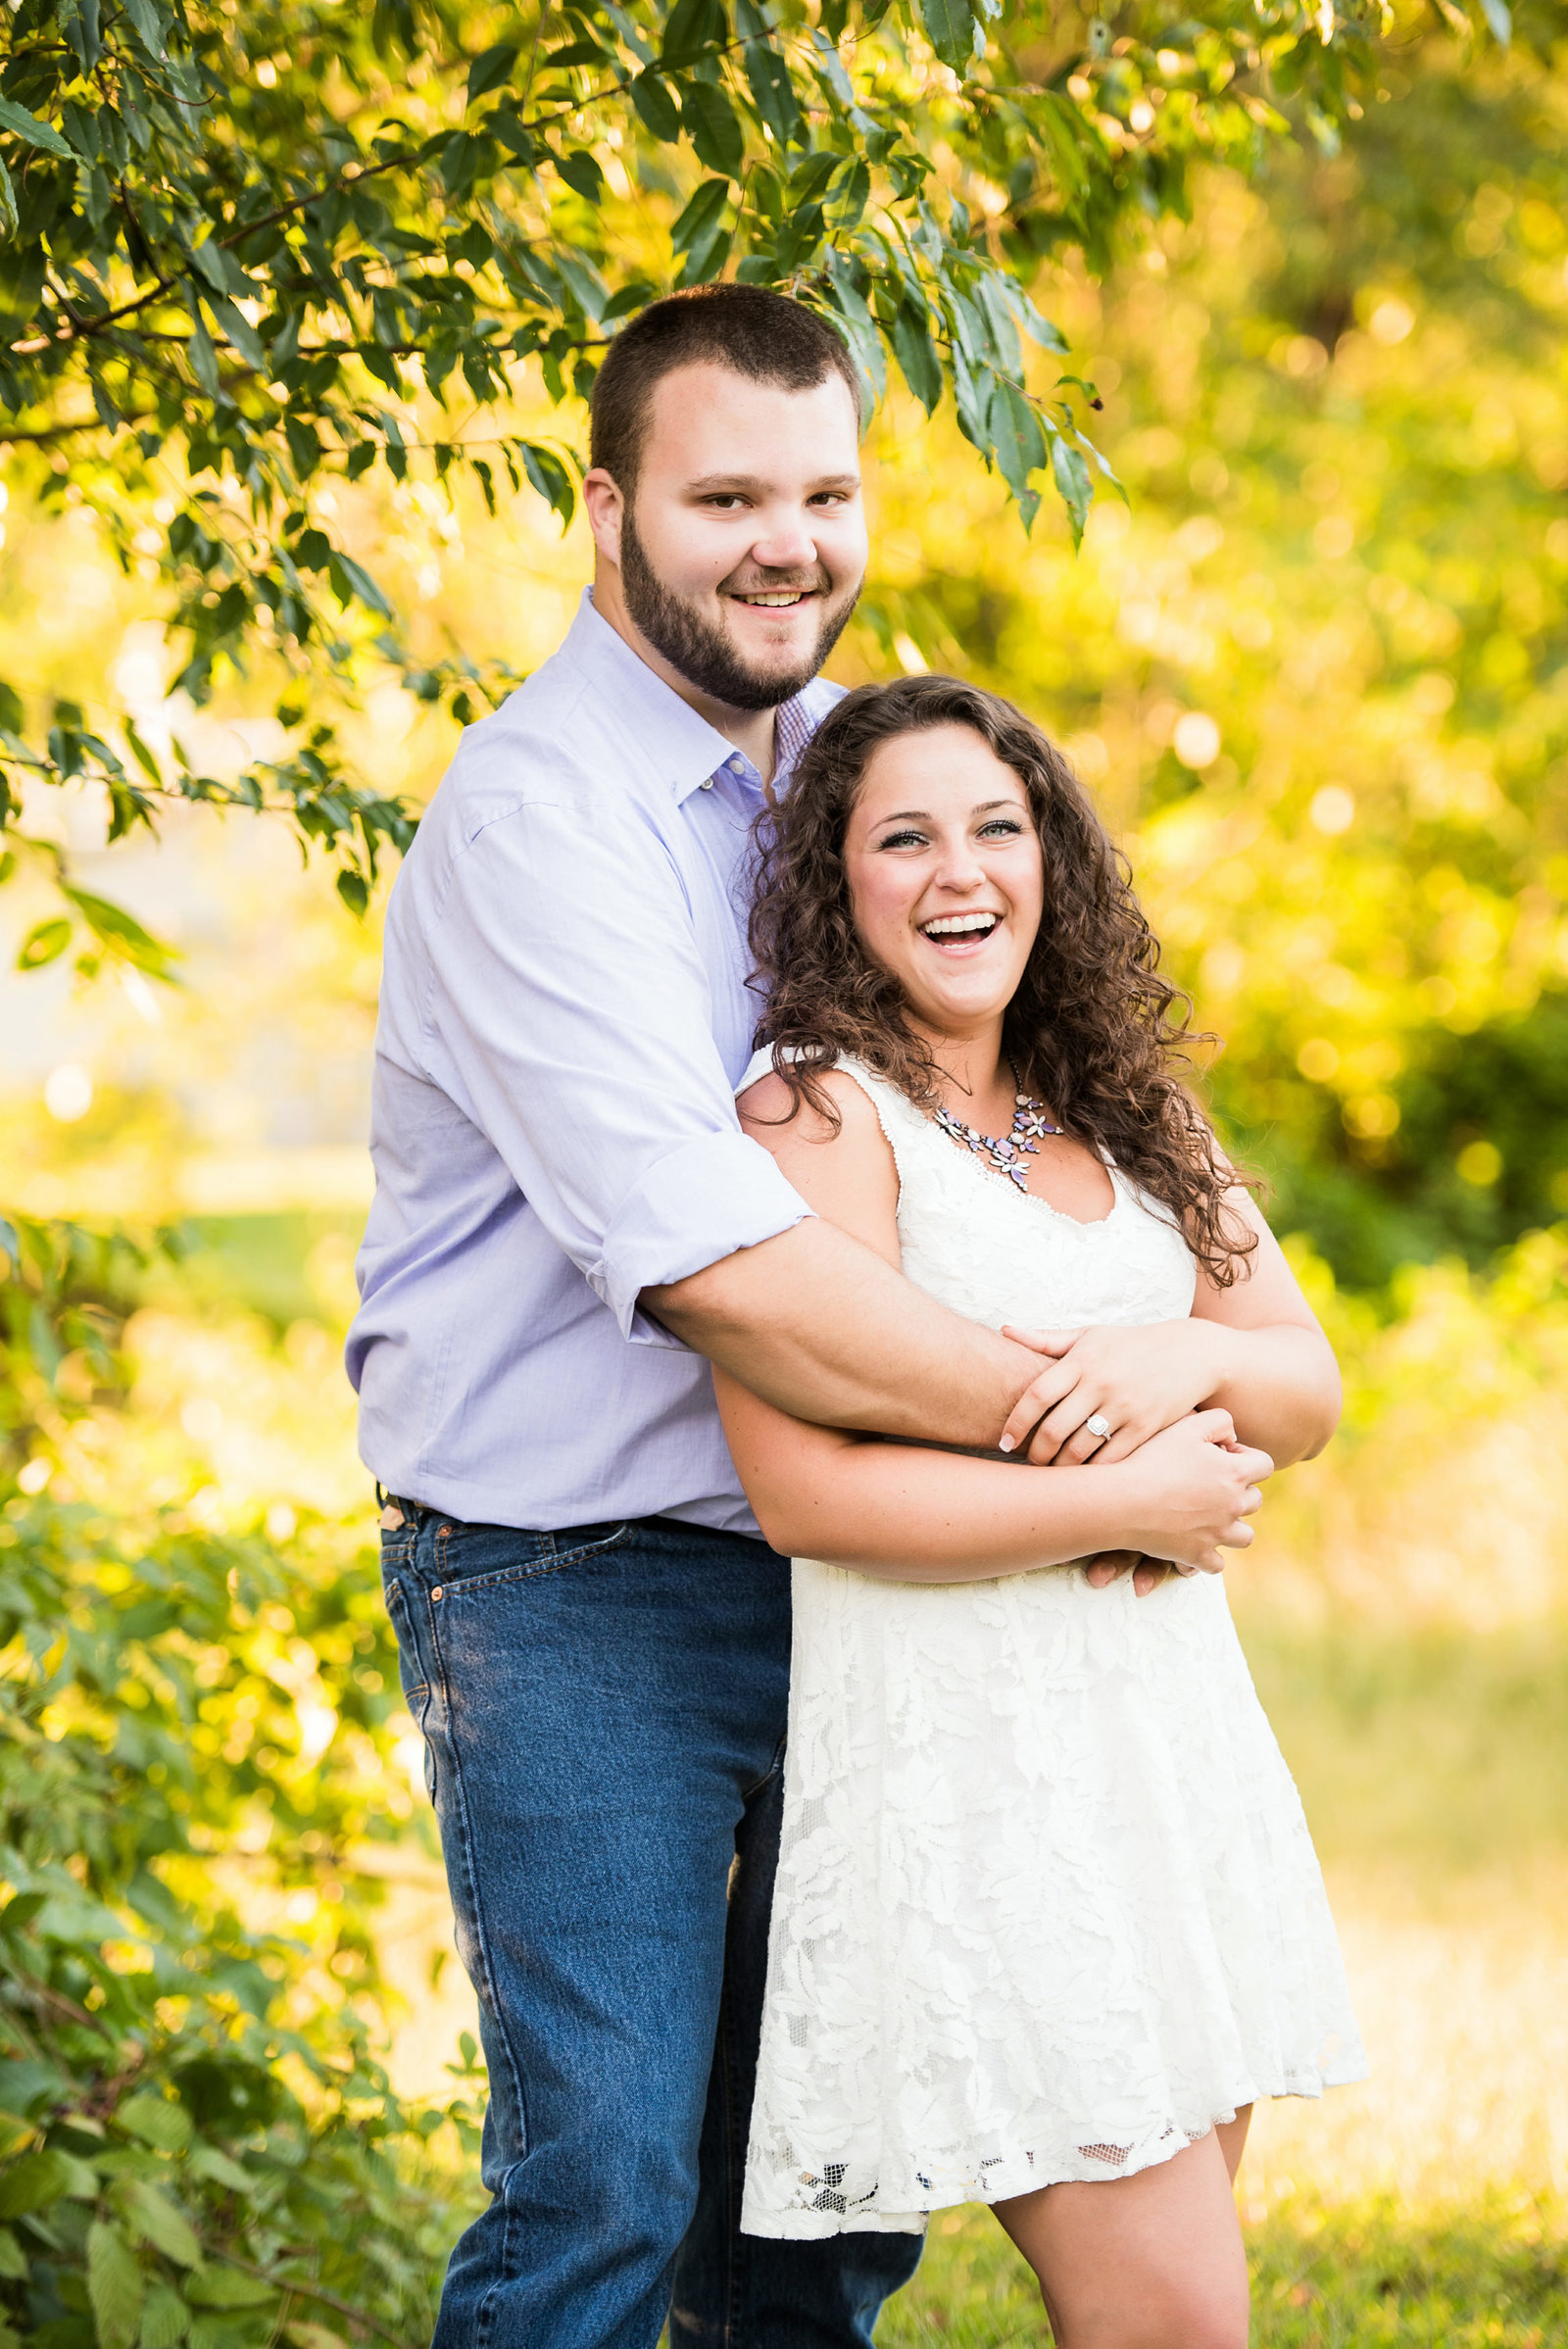 NJ_Rustic_Engagement_Photography090